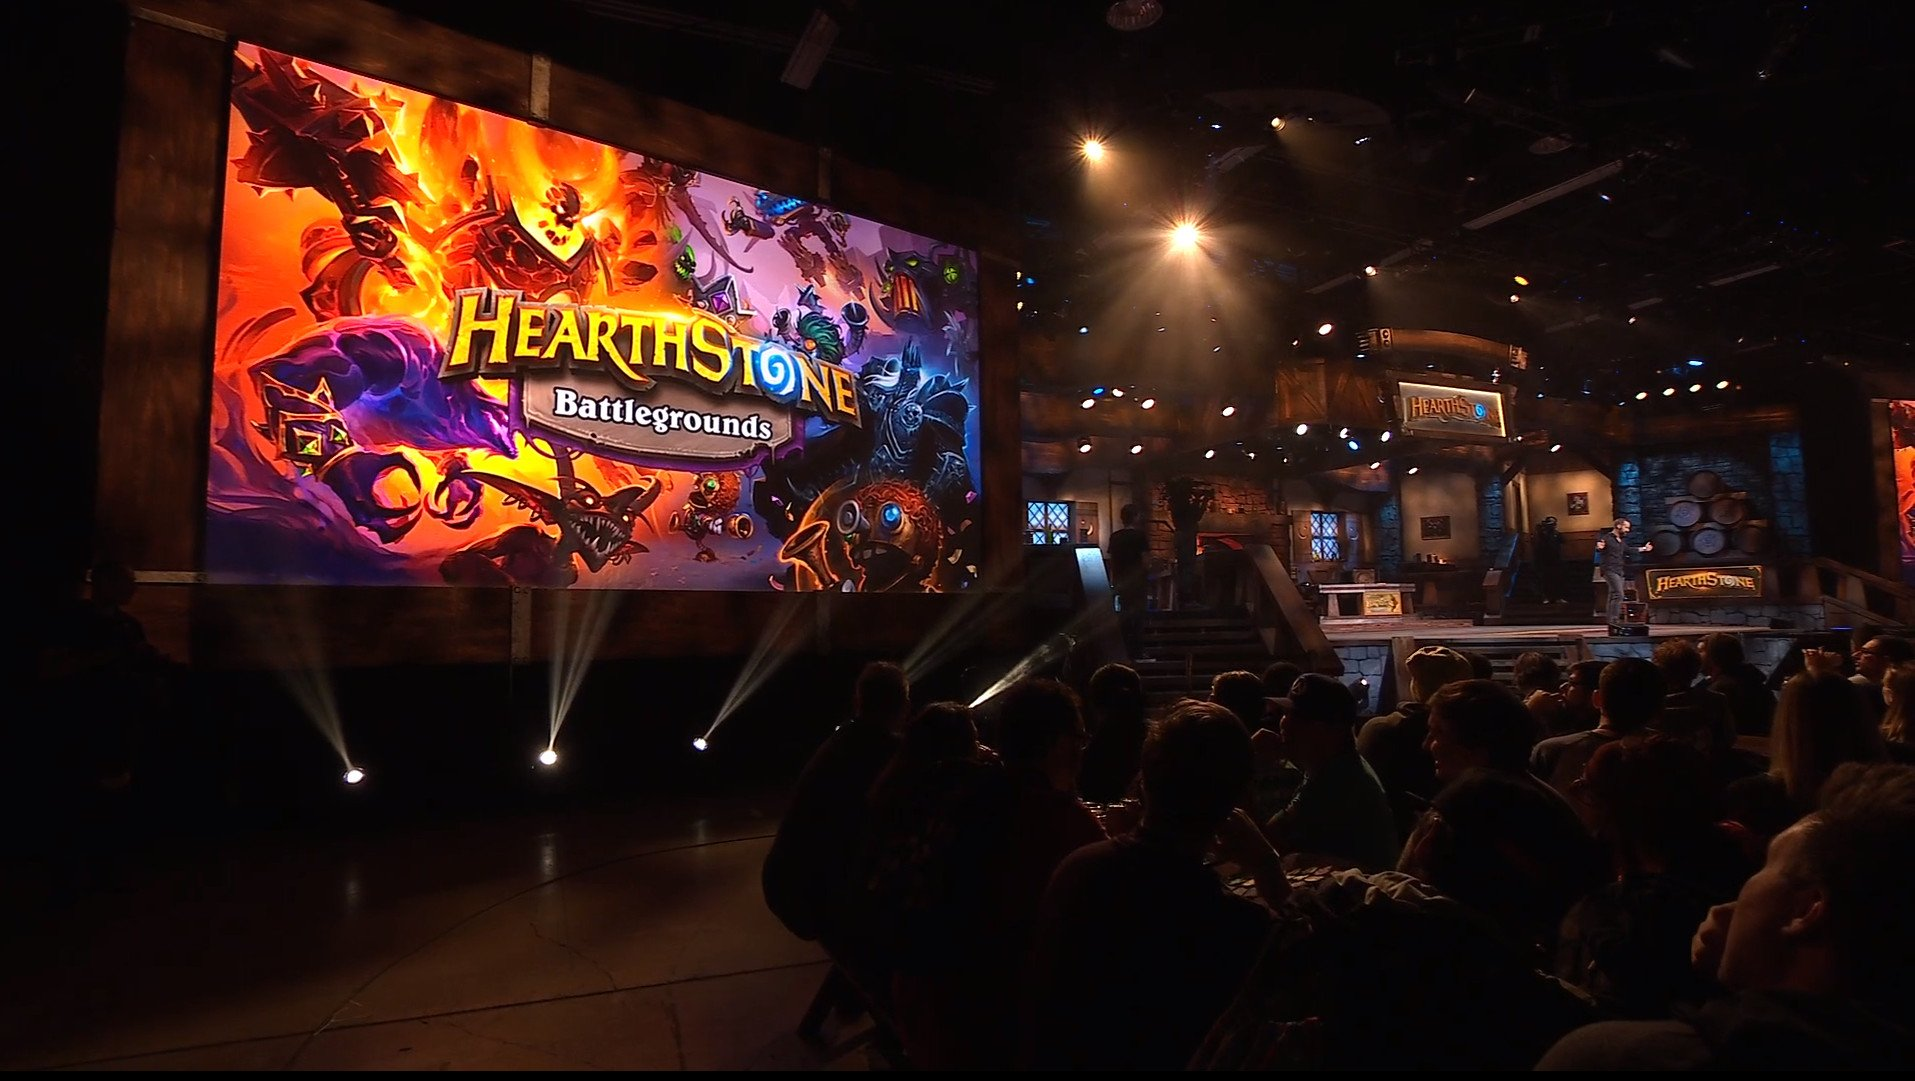 Hearthstone Battlegrounds was revealed at the Blizzcon 2019 keynote